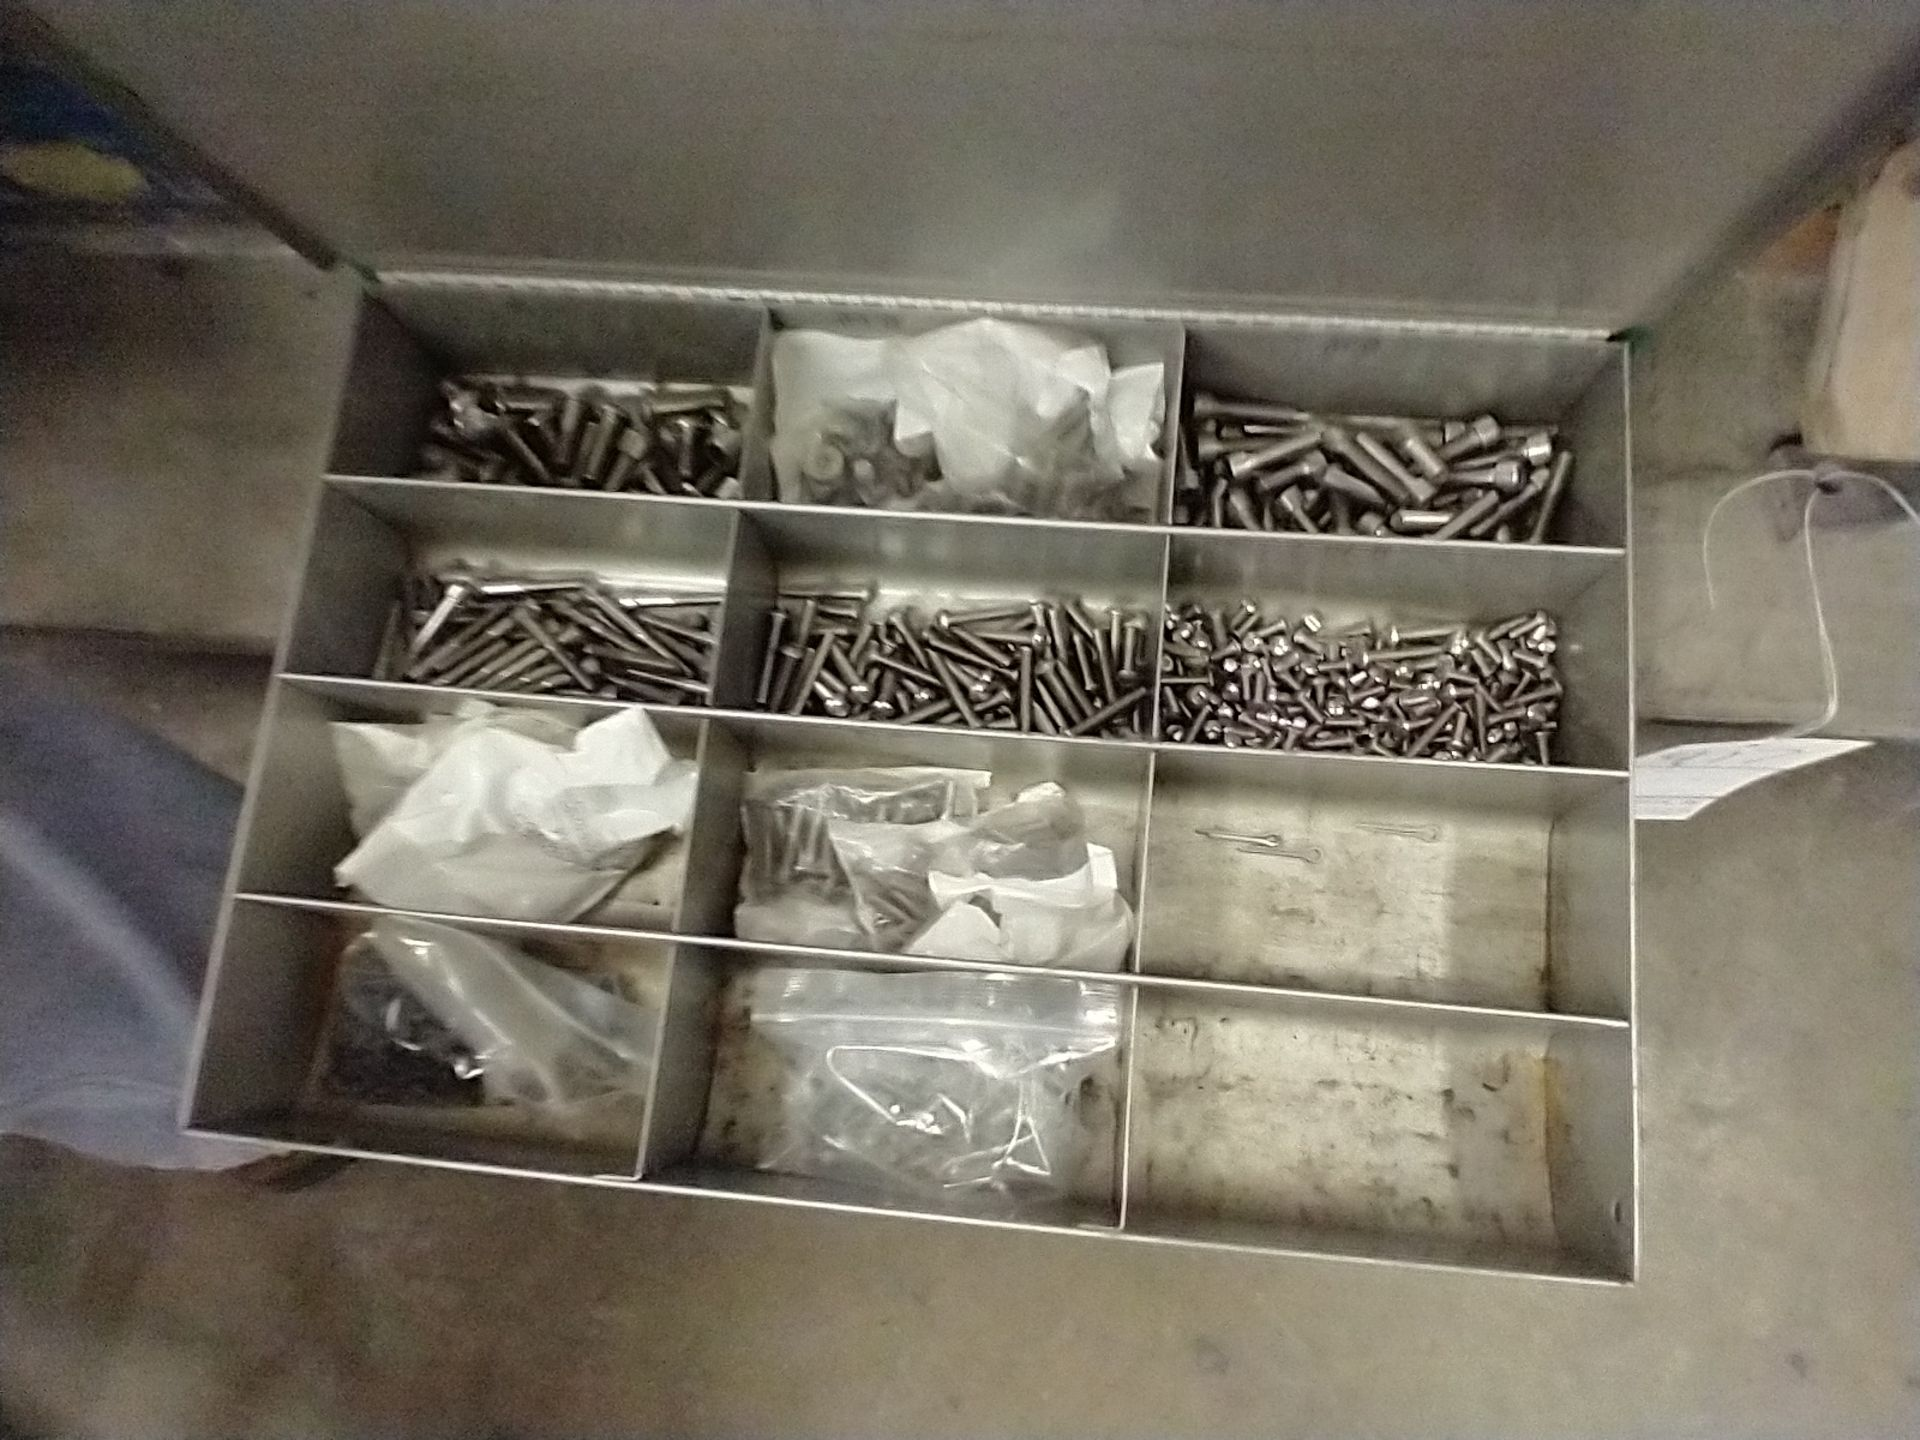 METAL 4 DRAWER PARTS CABINET WITH CONTENTS - Image 5 of 5